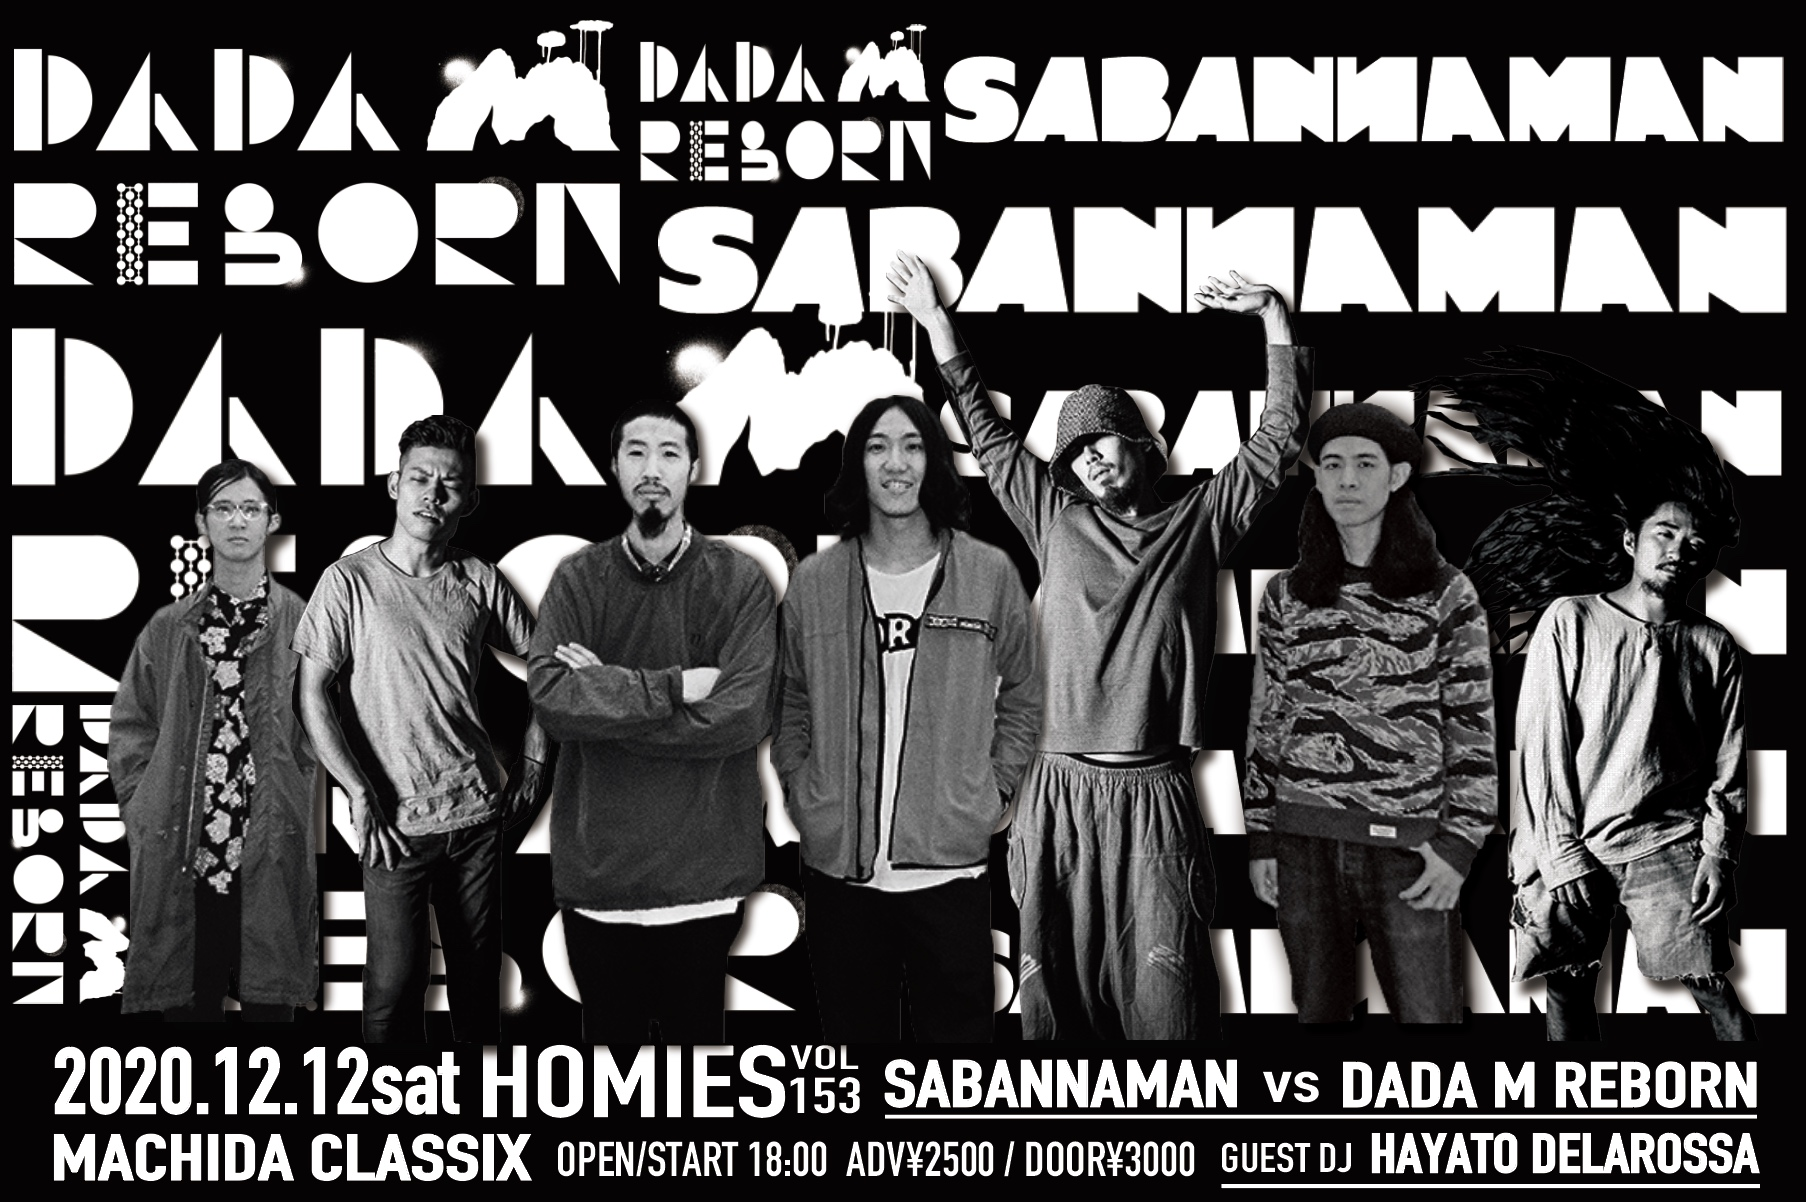 2020.12.12 (土) HOMIES vol.153 at 町田CLASSIX